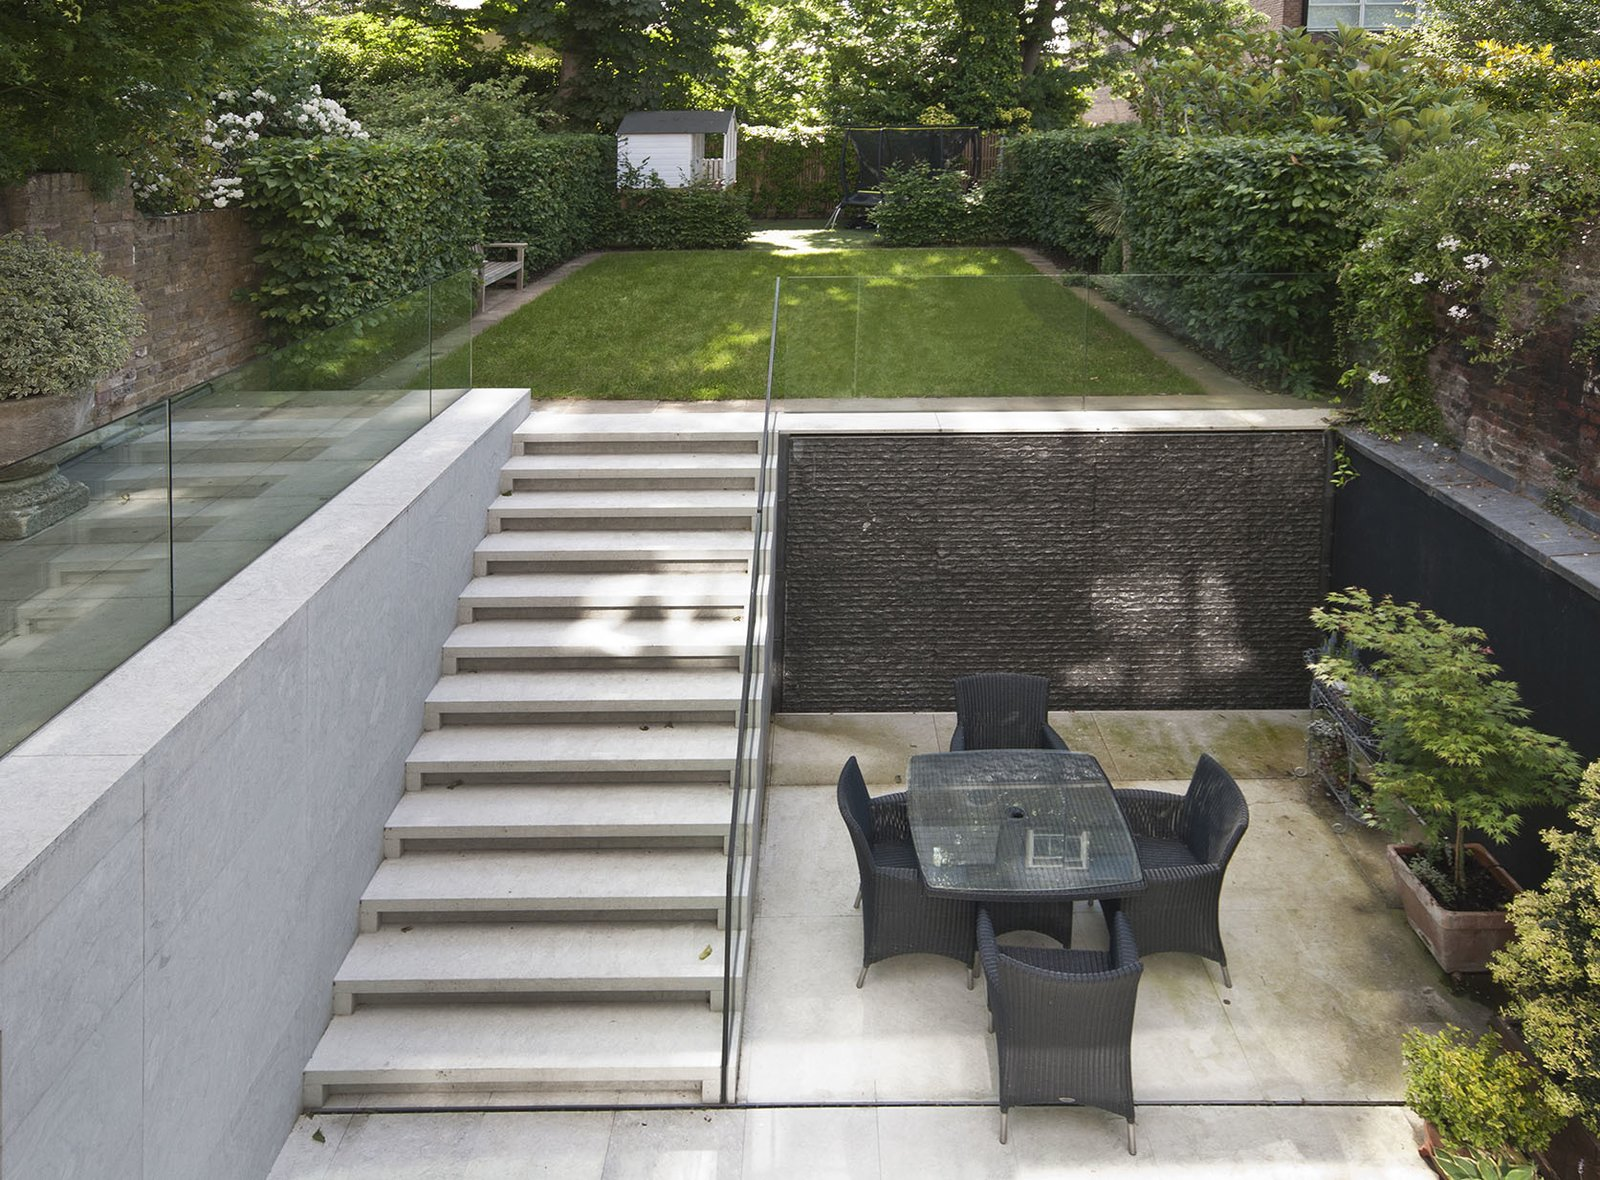 Outdoor and Garden Sunken Garden  Photos from Private Home Islington